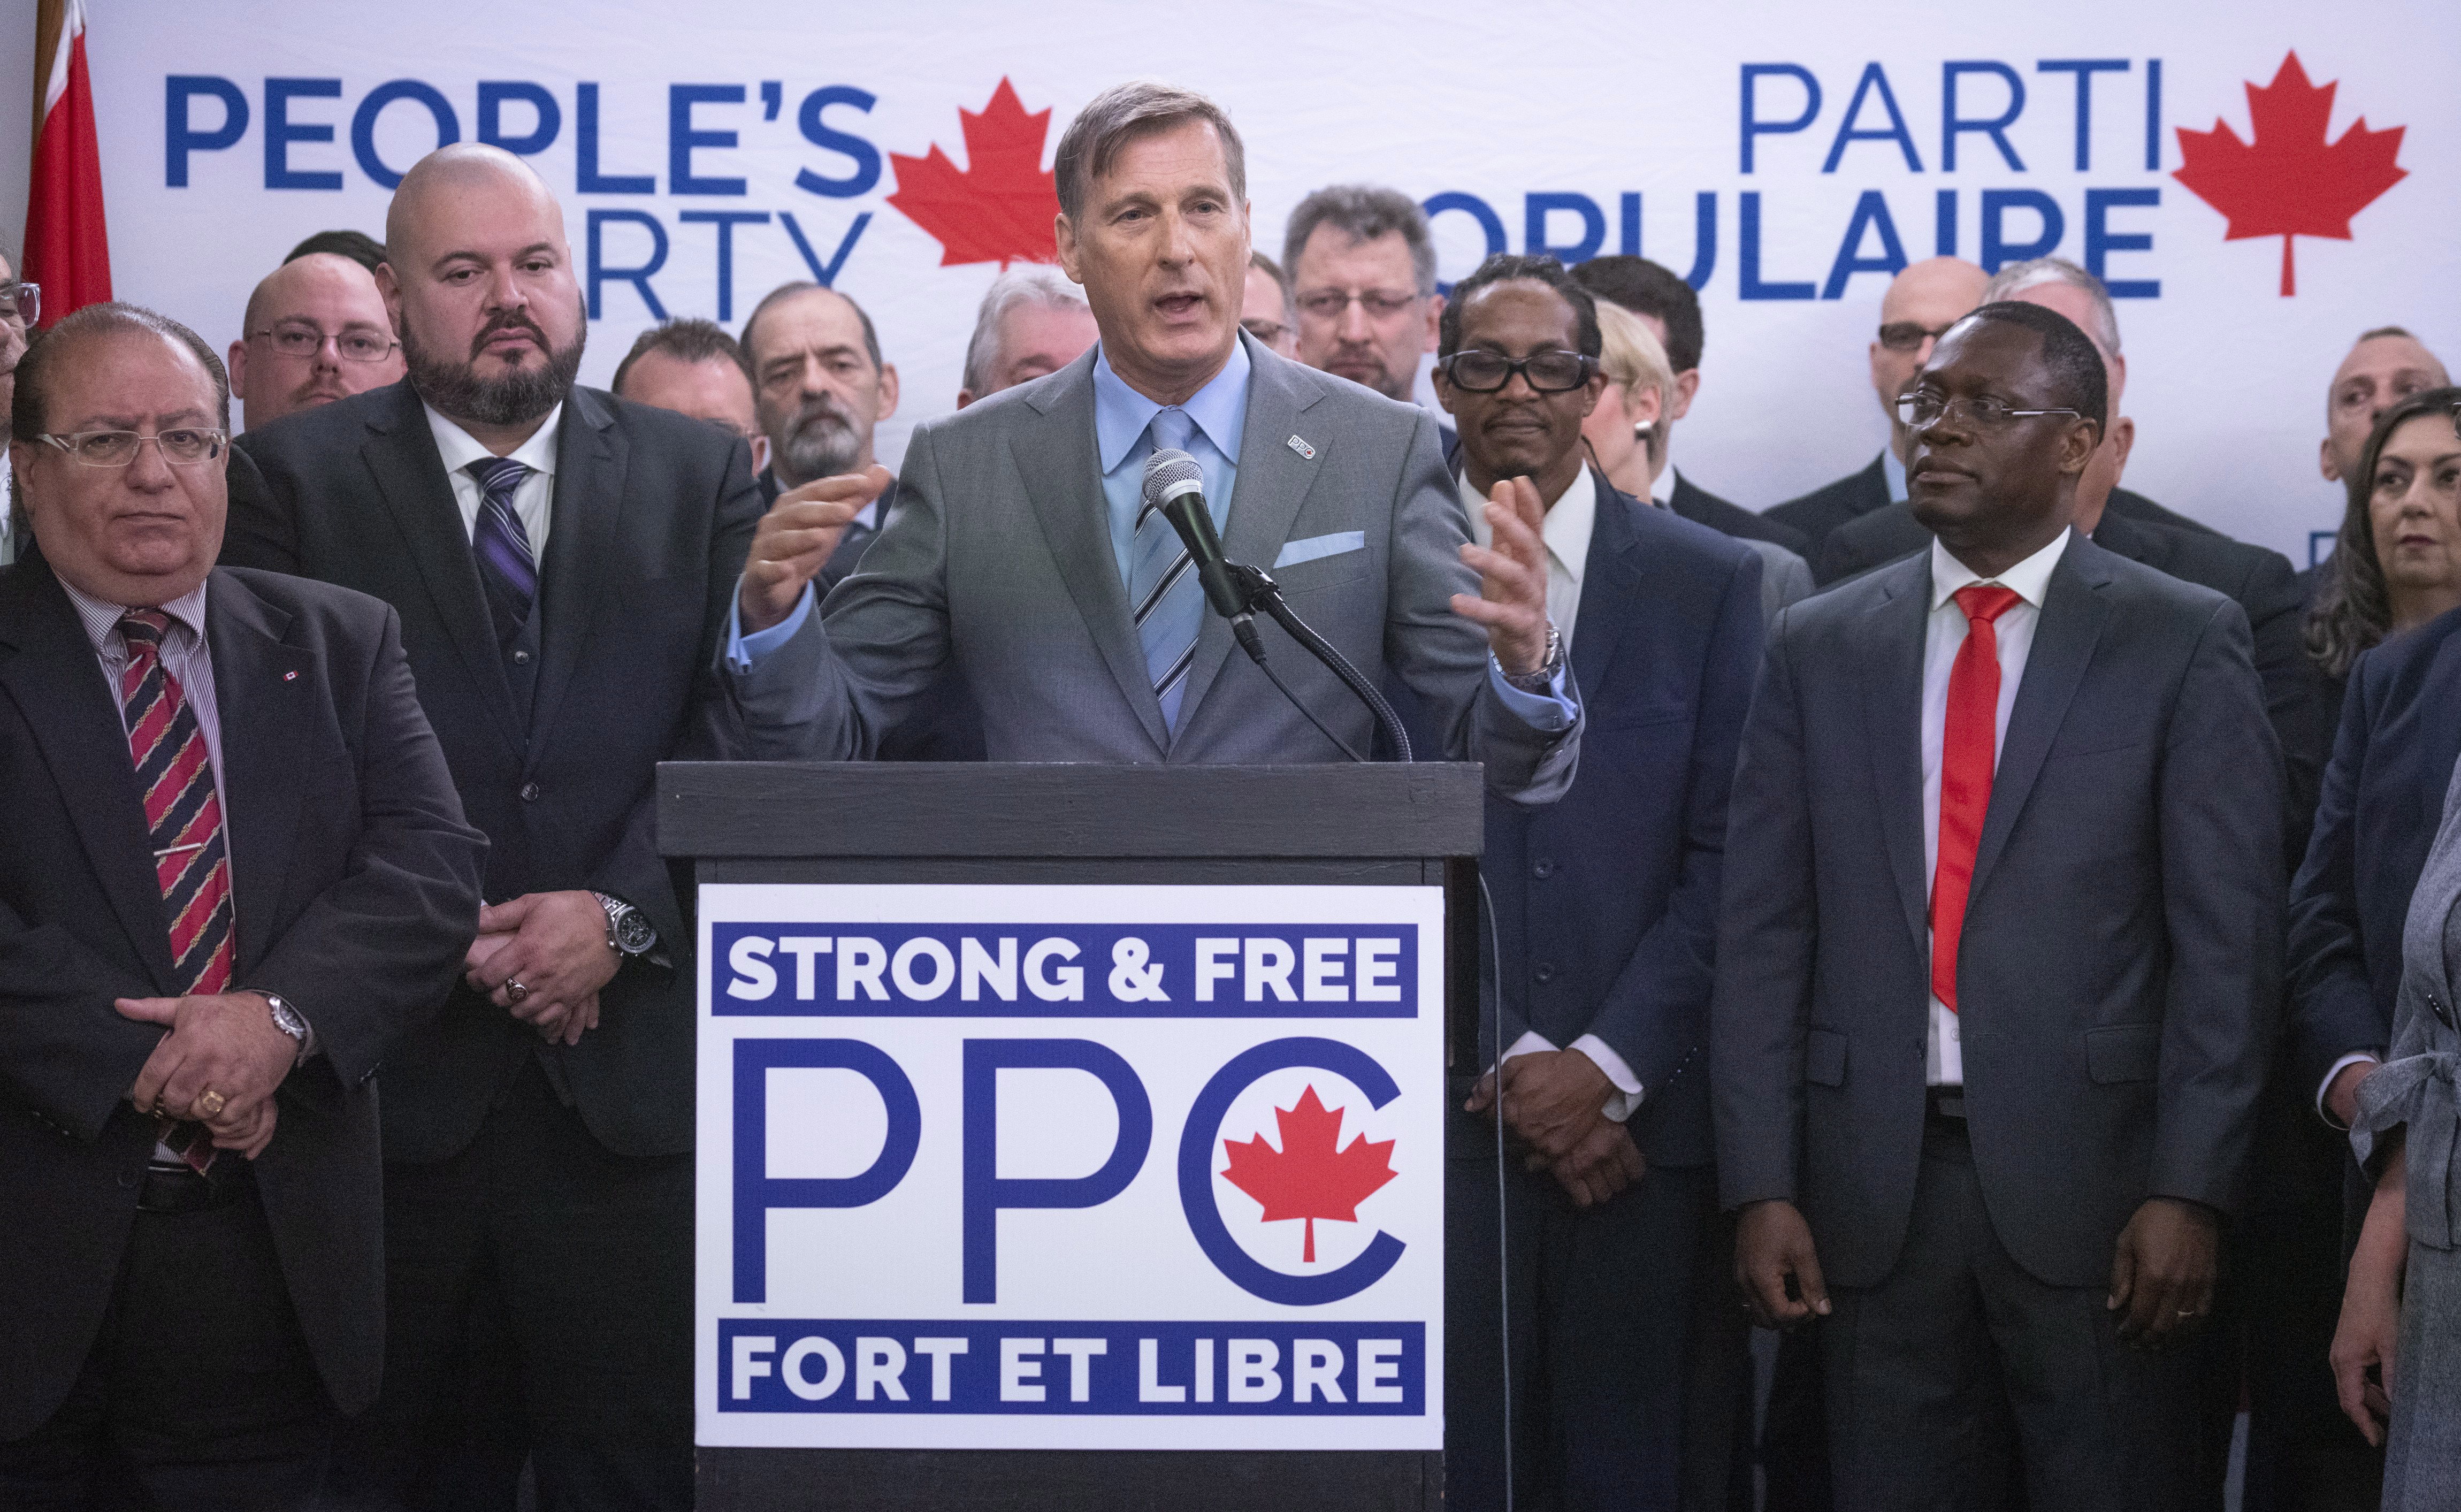 People's Party leader Maxime Bernier stands at a podium.